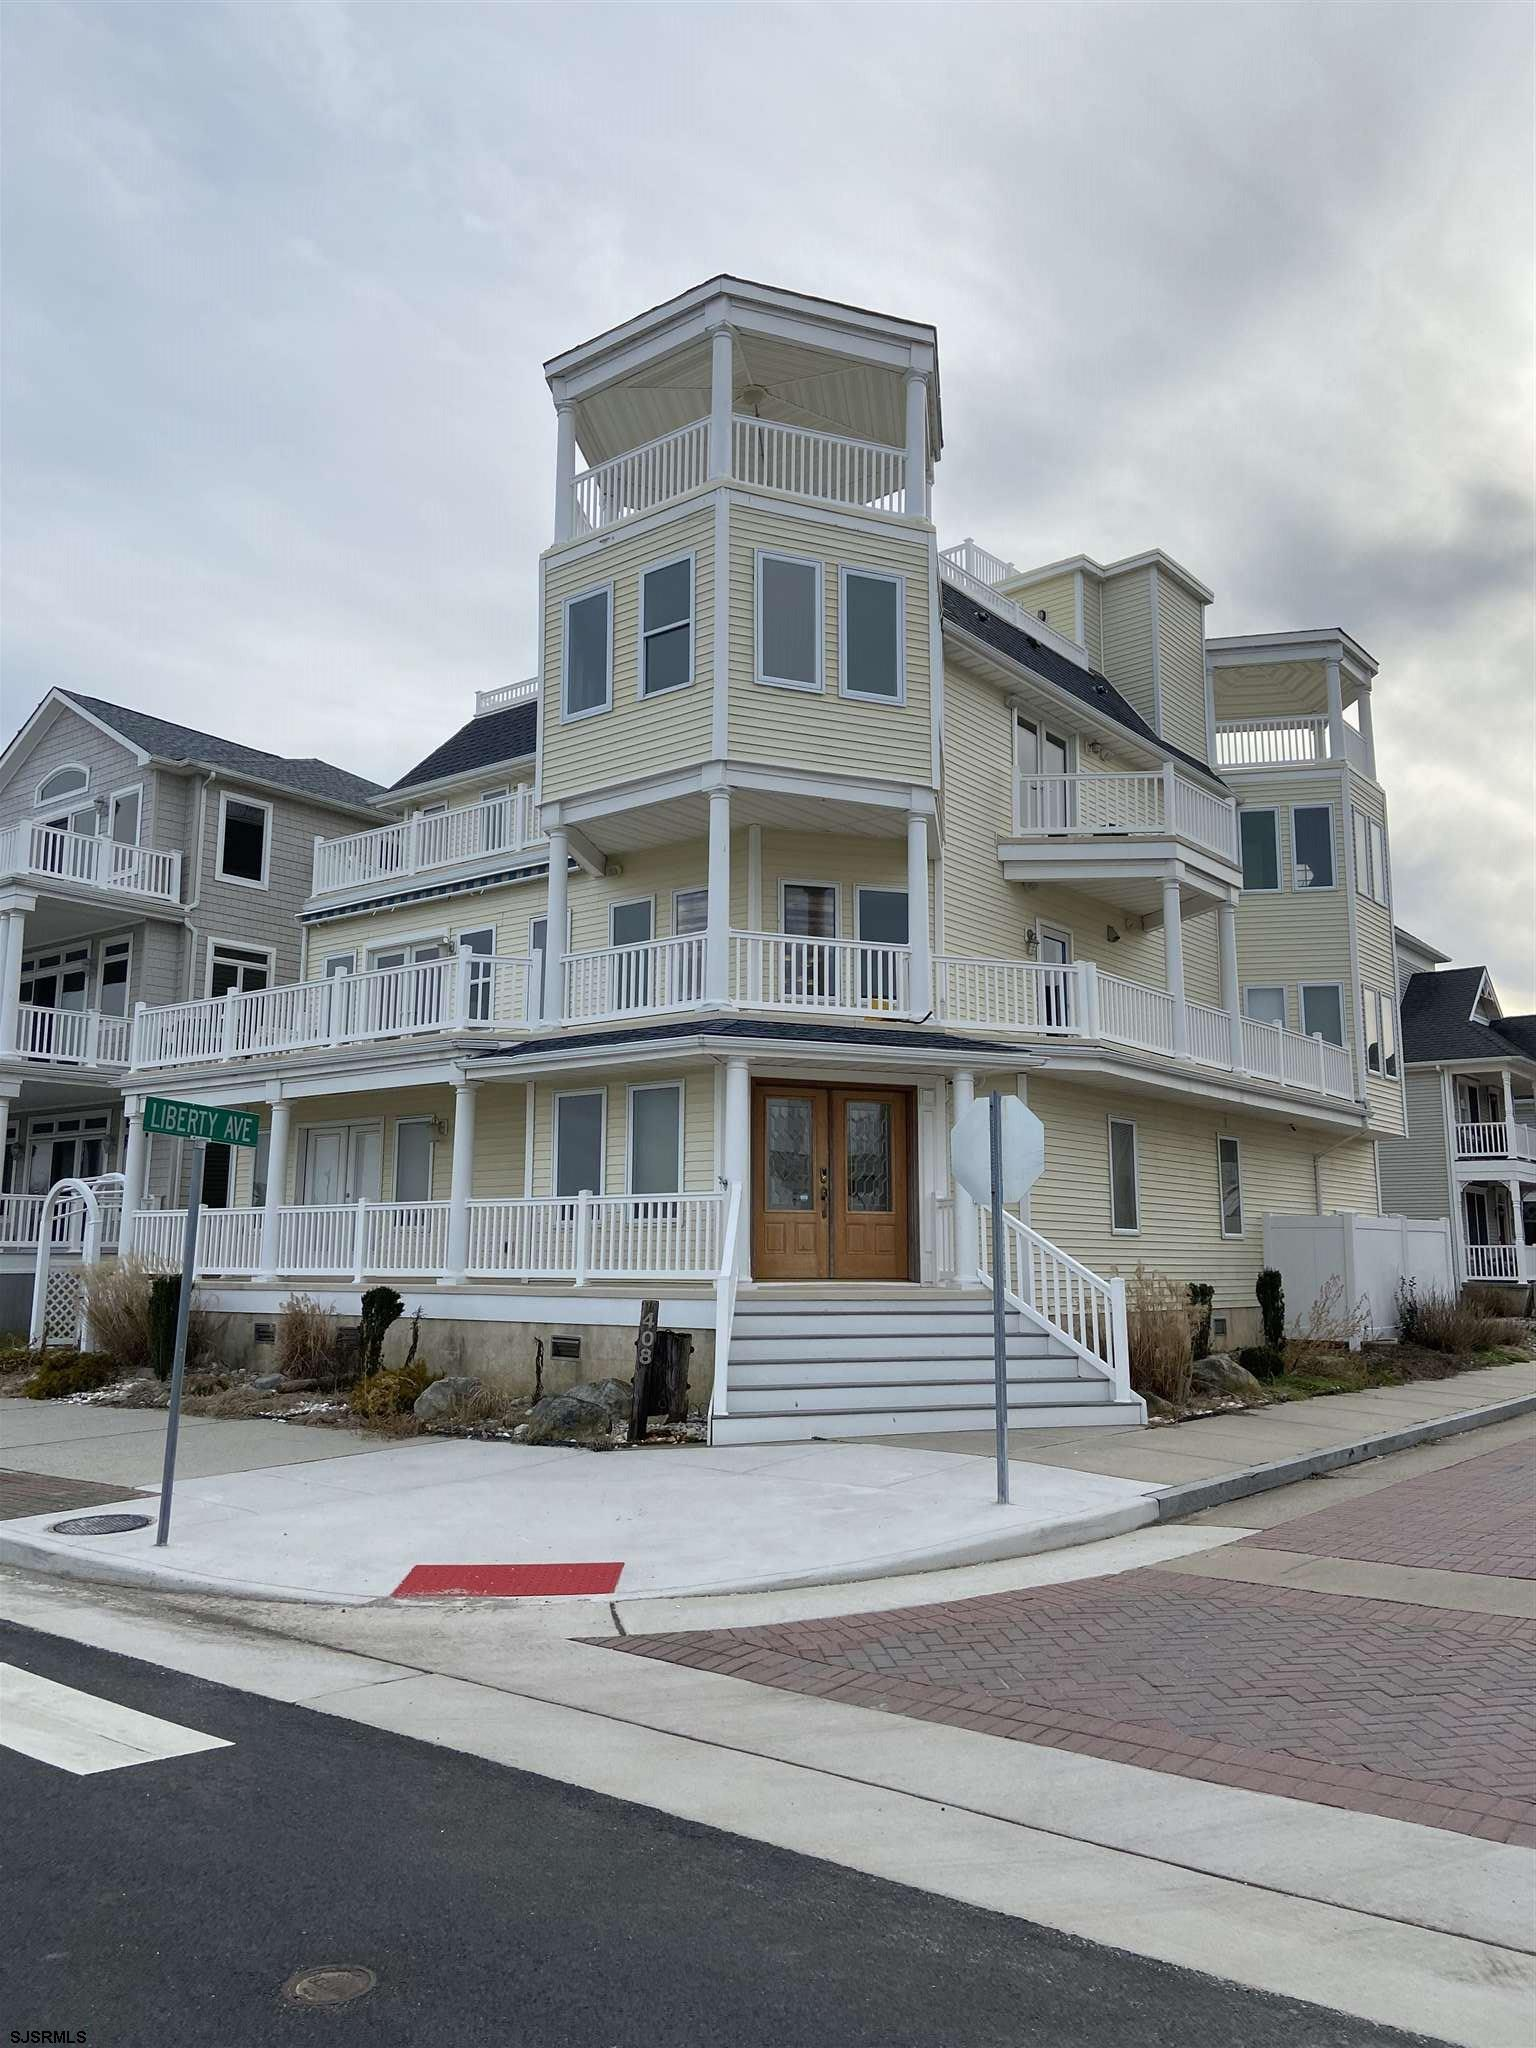 SPECTACULAR BEACH FRONT, CORNER PROPERTY!! This Architectural Gem Is Located In The Historic Gardner's Basin Area. This Dream Home Comes With Four Stories Of Breathtaking Panoramic Views Of The Ocean, Fishing Pier, Marina, Parks, Casinos, Boardwalk And Brigantine Island. This Contemporary Home Artfully Balances Elegance W/Comfort And Charm W/Seven Decks Designed For Shore Living And Entertaining. From the moment you enter the home you will be impressed by the huge open foyer. The 1st floor has 3BD's and a huge full bath. The main living space consists of an open concept living room & dining room, both with spectacular views of the beach. They both overlook the beautiful EIK which has SS appliances,42 inch cabinets and granite counters. perf